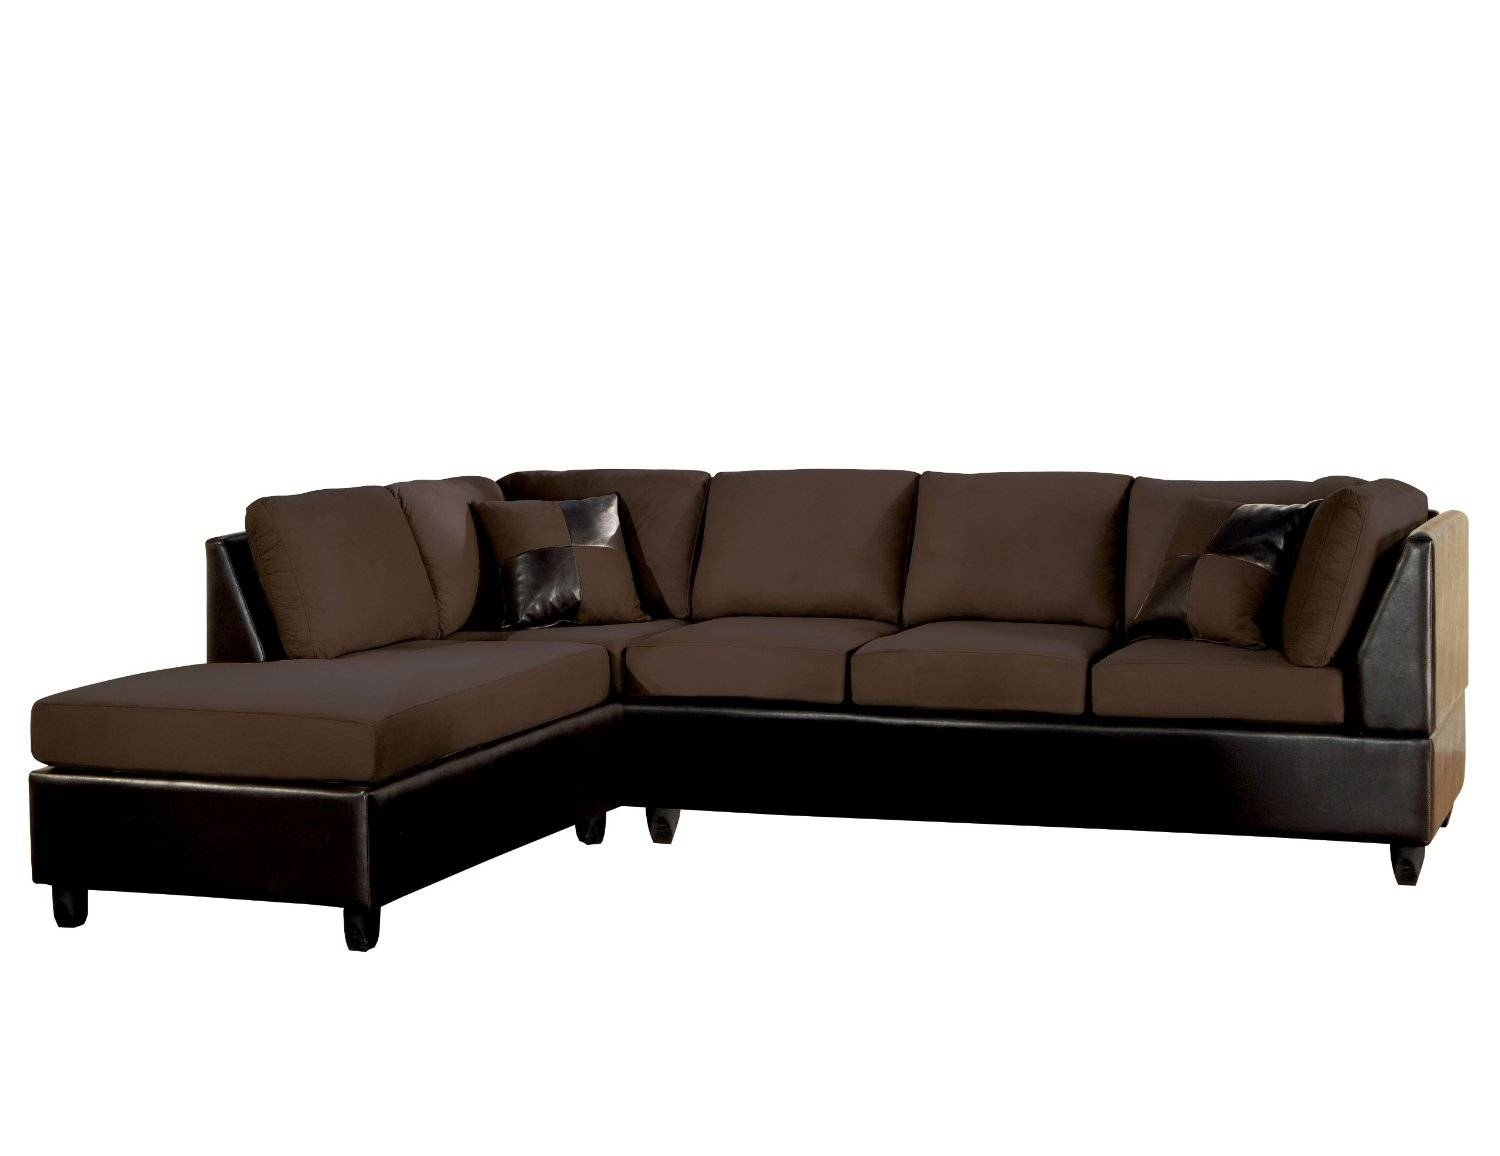 armless sofas design pune sofa set dealers small sectional rowe tempo five piece